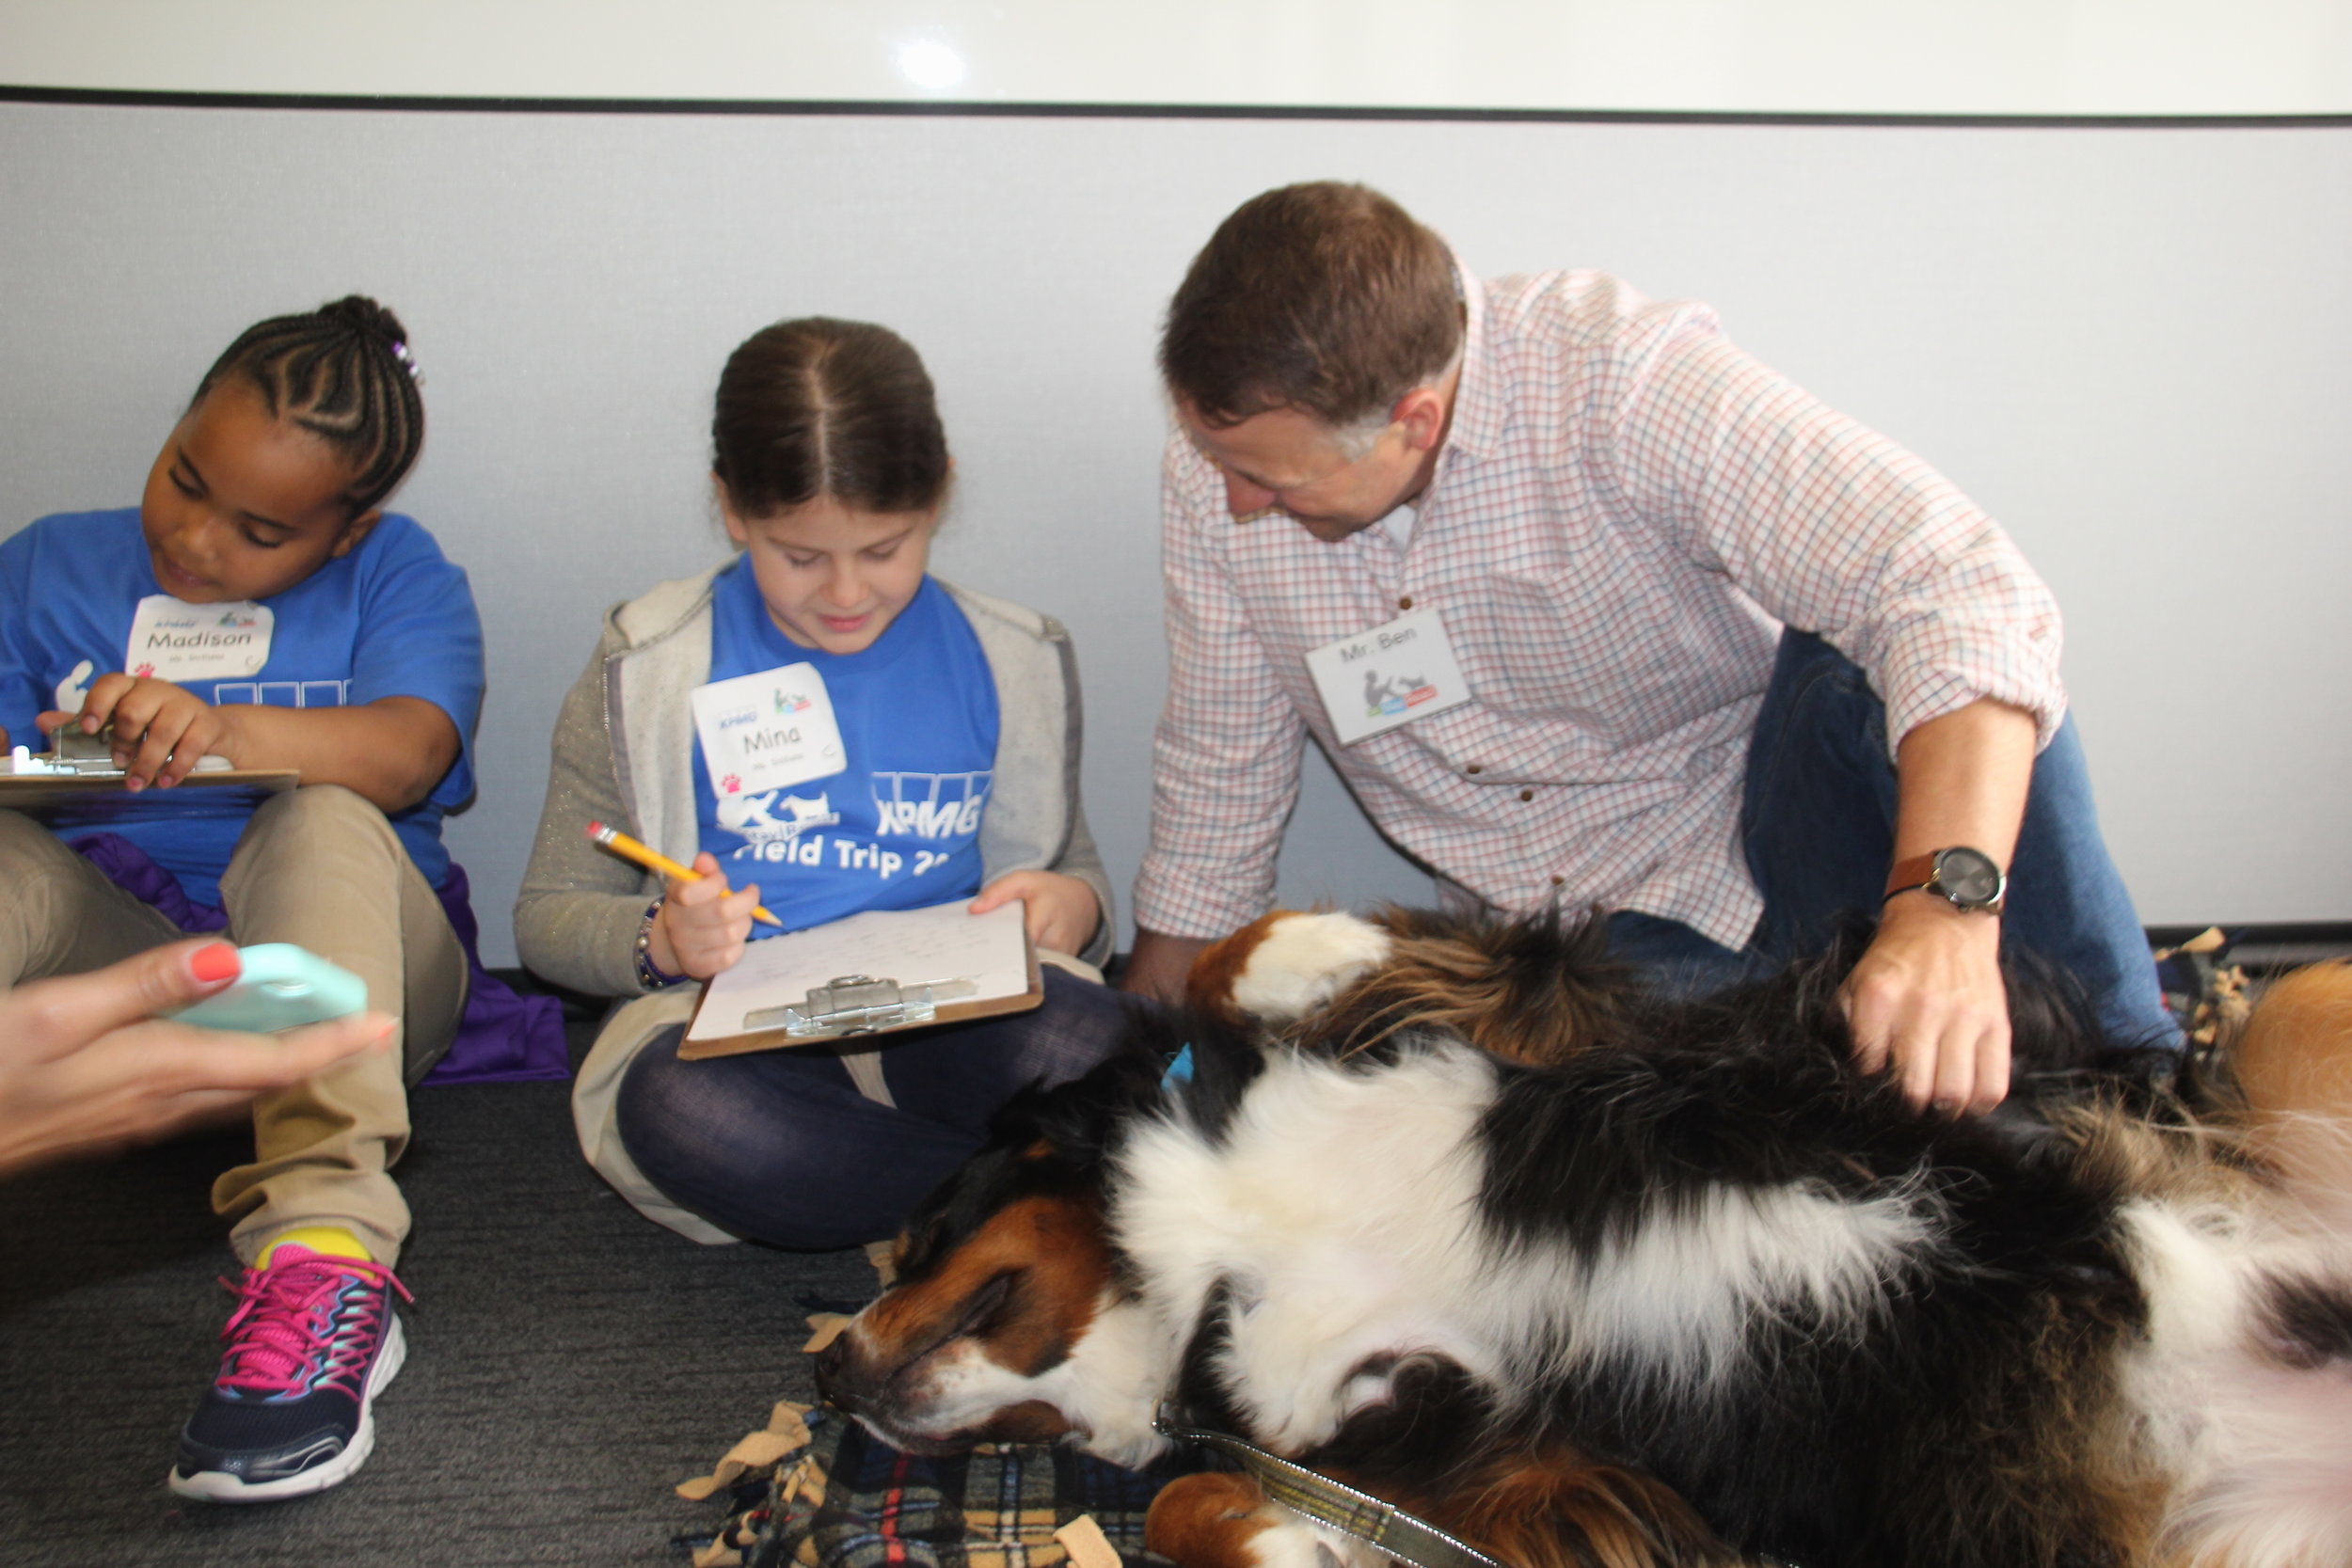 Certified Reading Assistance Dog Hank begs for belly rubs while second grade students work on writing their stories during a field trip to the KPMG offices.